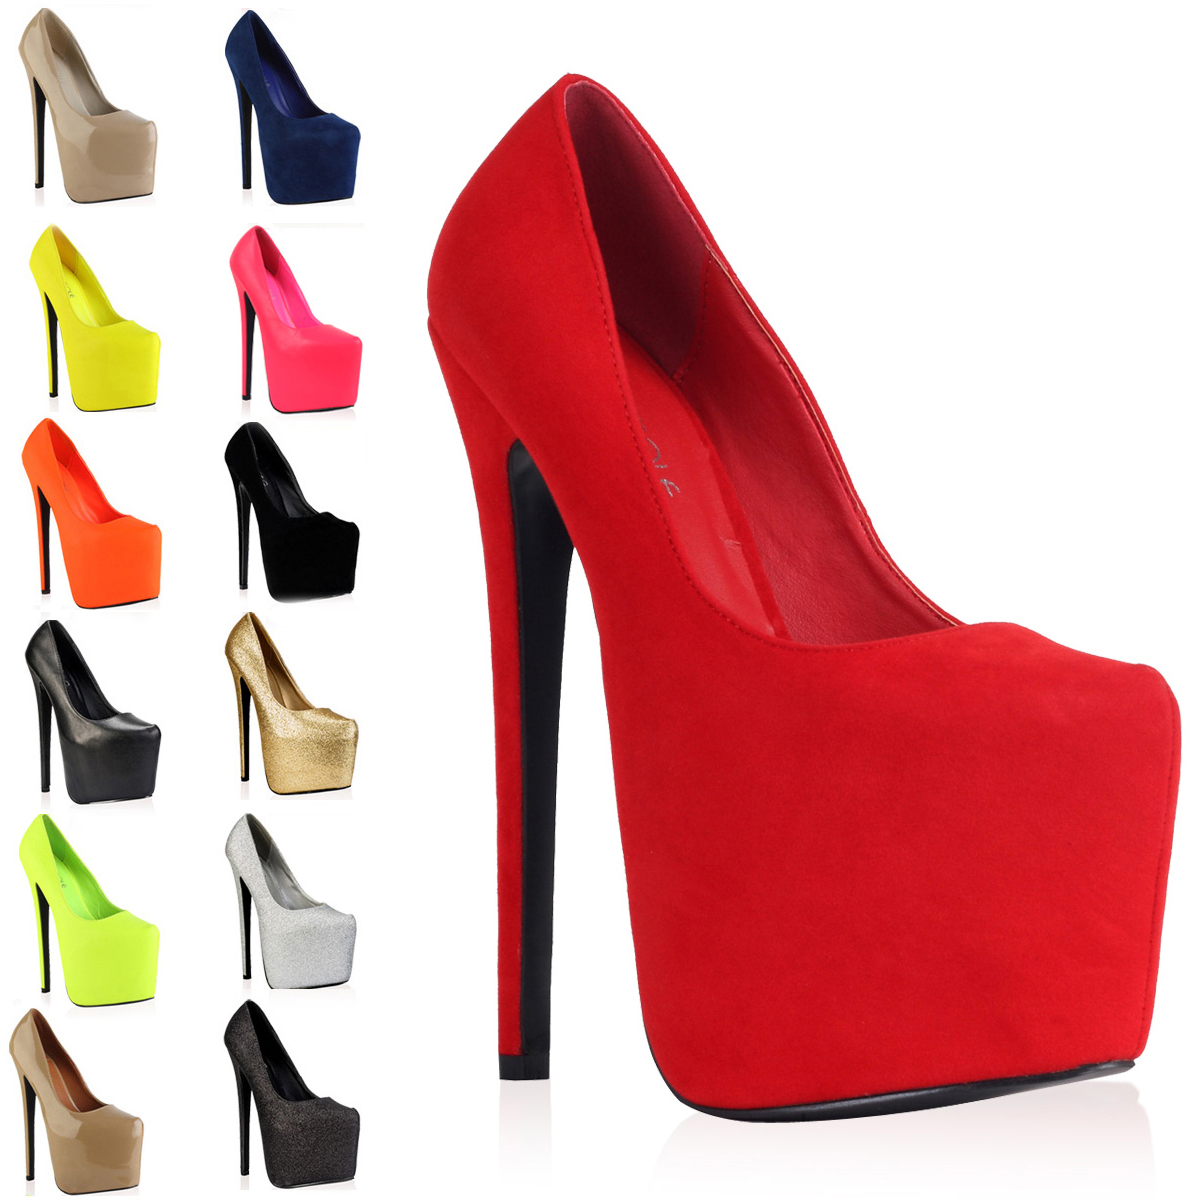 WOMENS POINTY LADIES PLATFORM HIGH HEEL 7 INCH STILETTO COURT ...